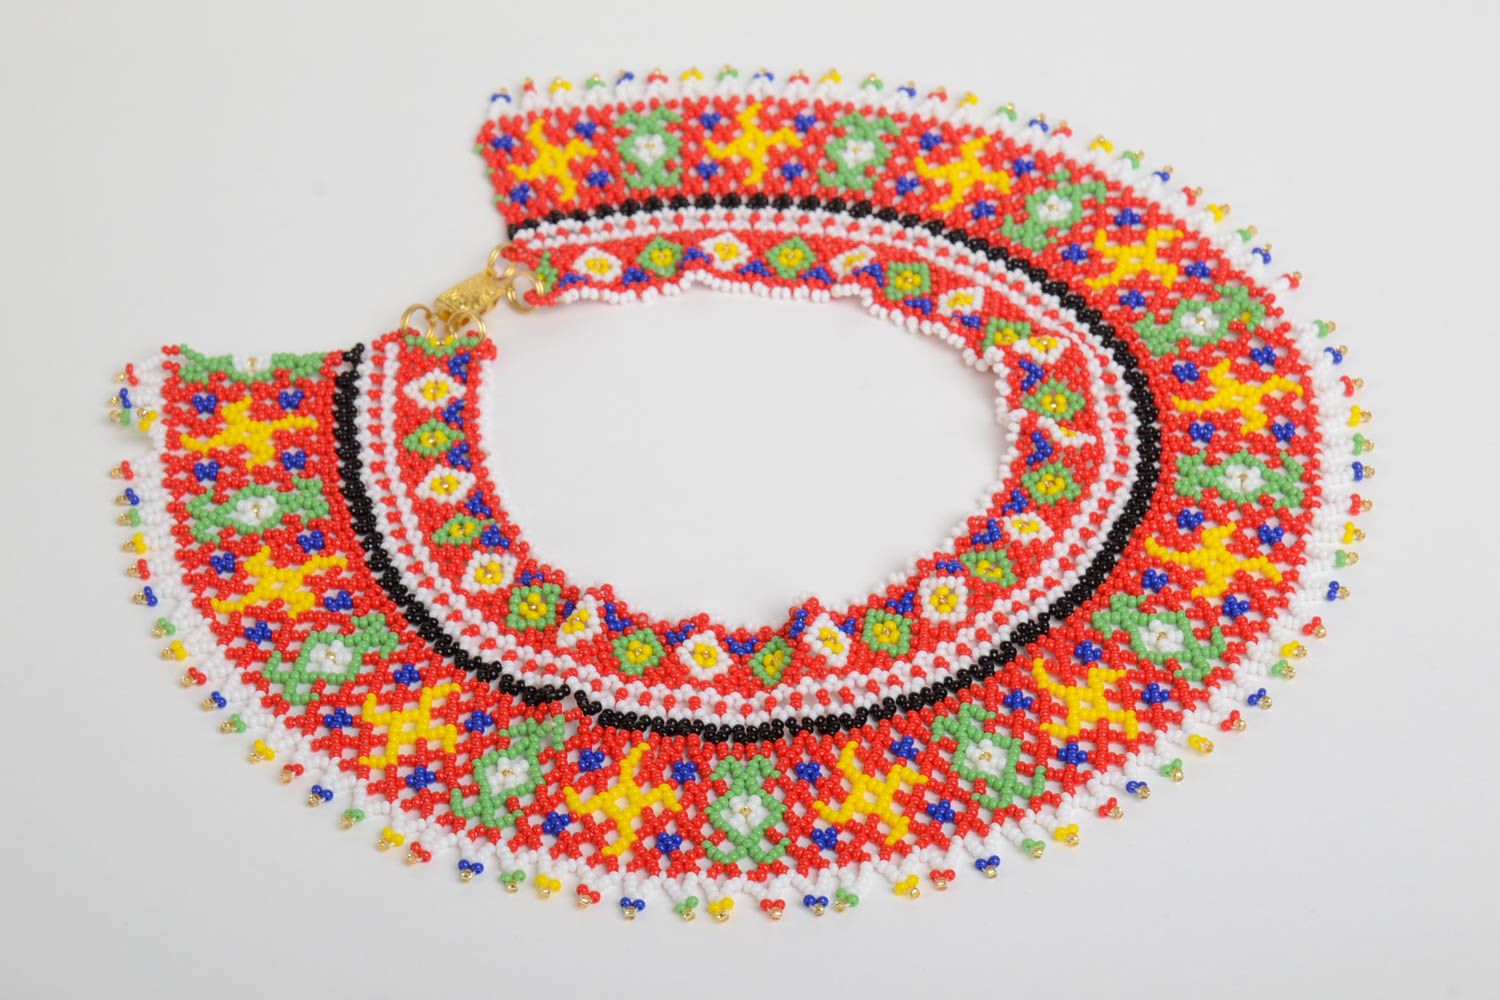 Beaded necklace handmade jewelry fashion necklaces for women designer jewelry photo 2